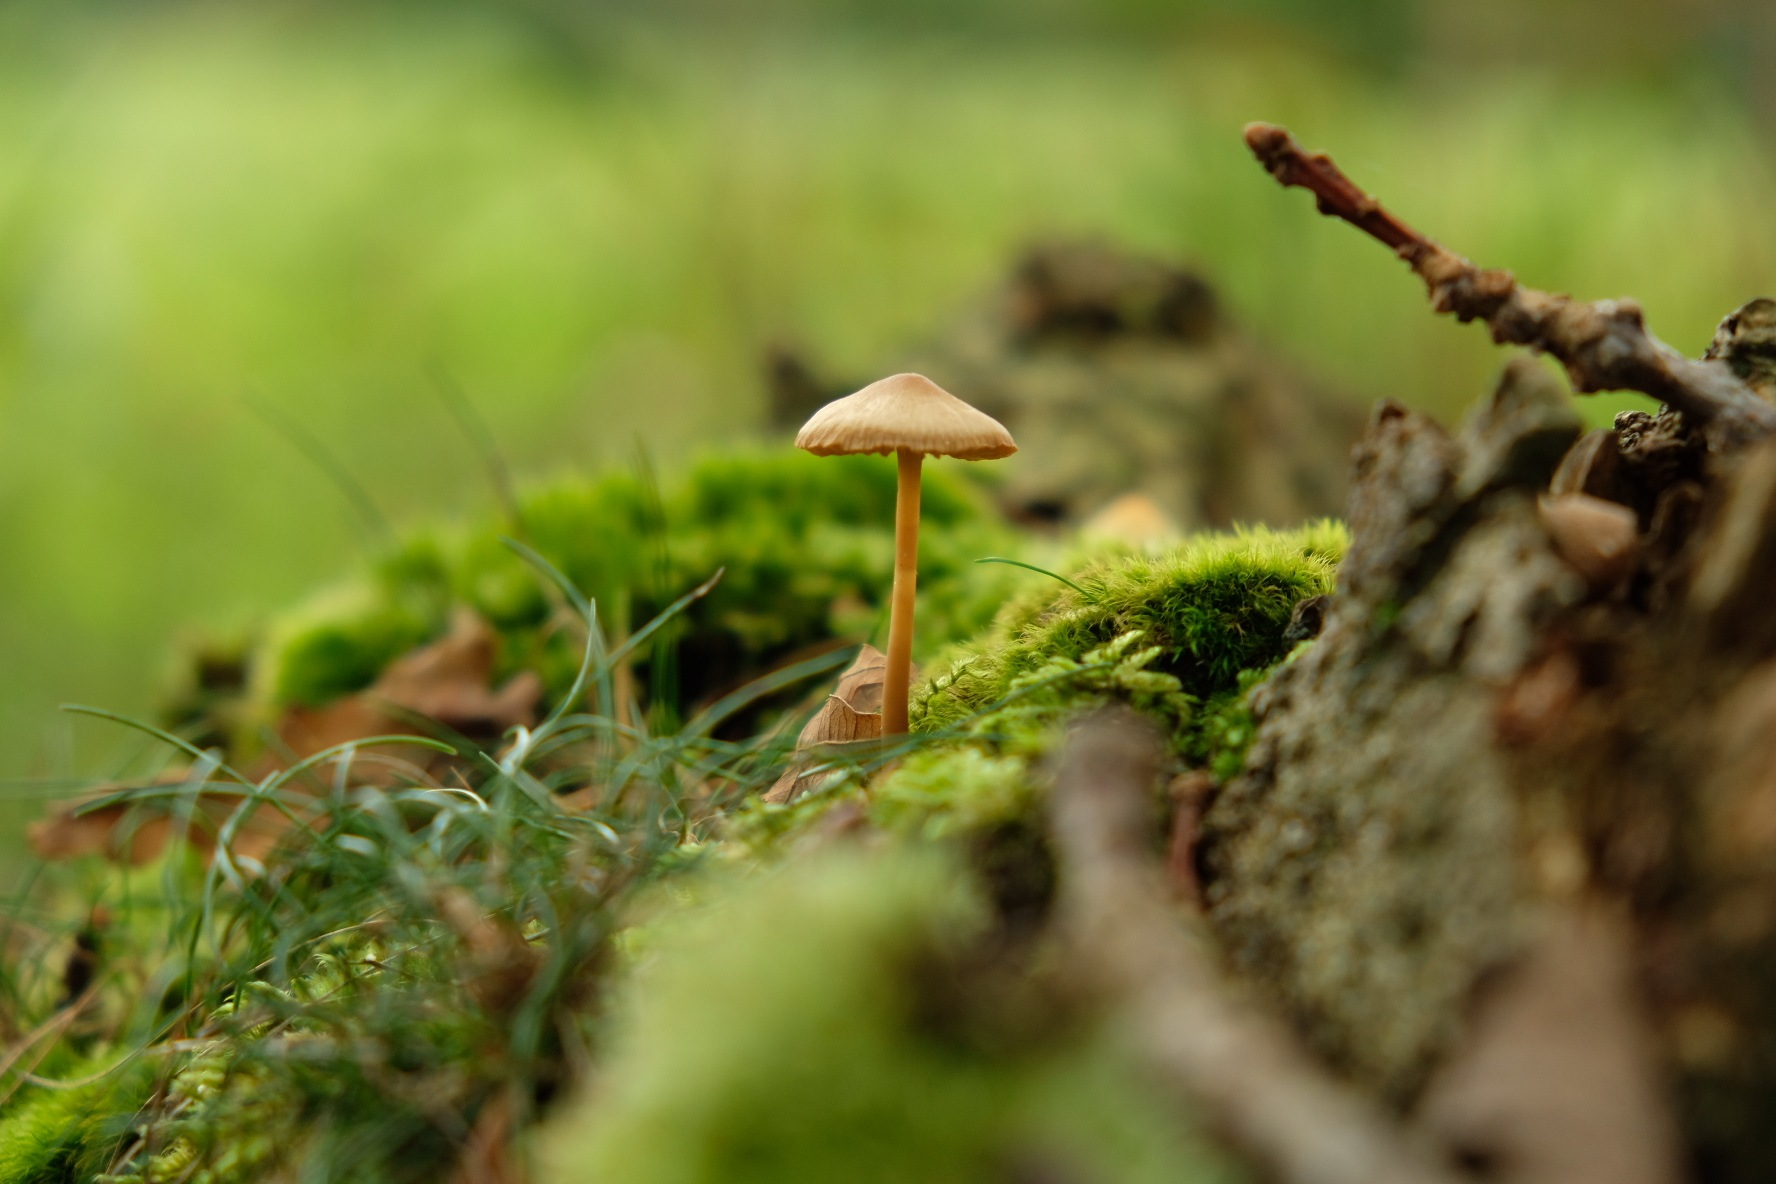 Fungus in the middle by StudioAnjaPhotography